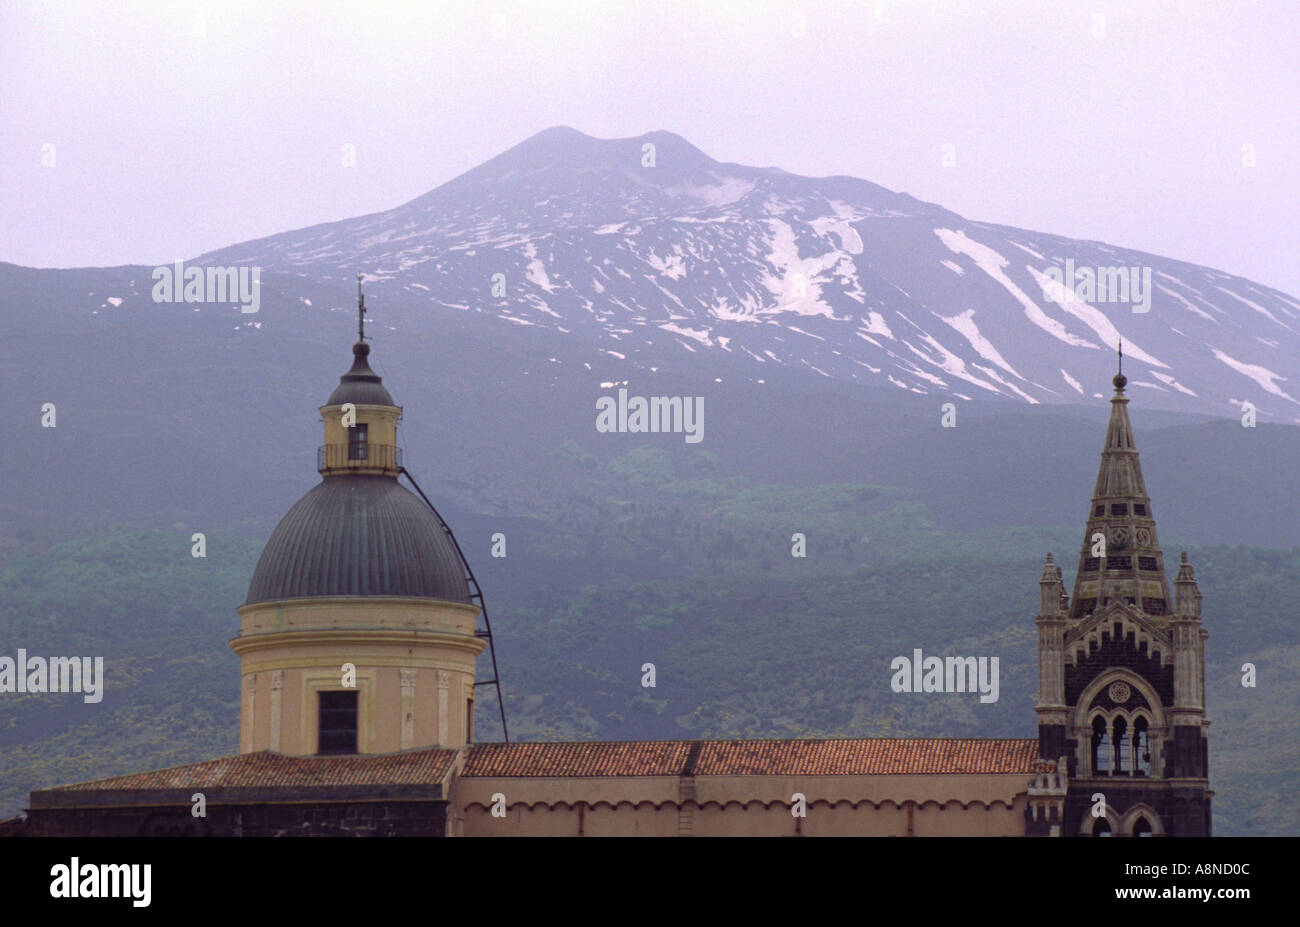 Church Roof of Randazzo and Mount Etna Sicily Italy - Stock Image